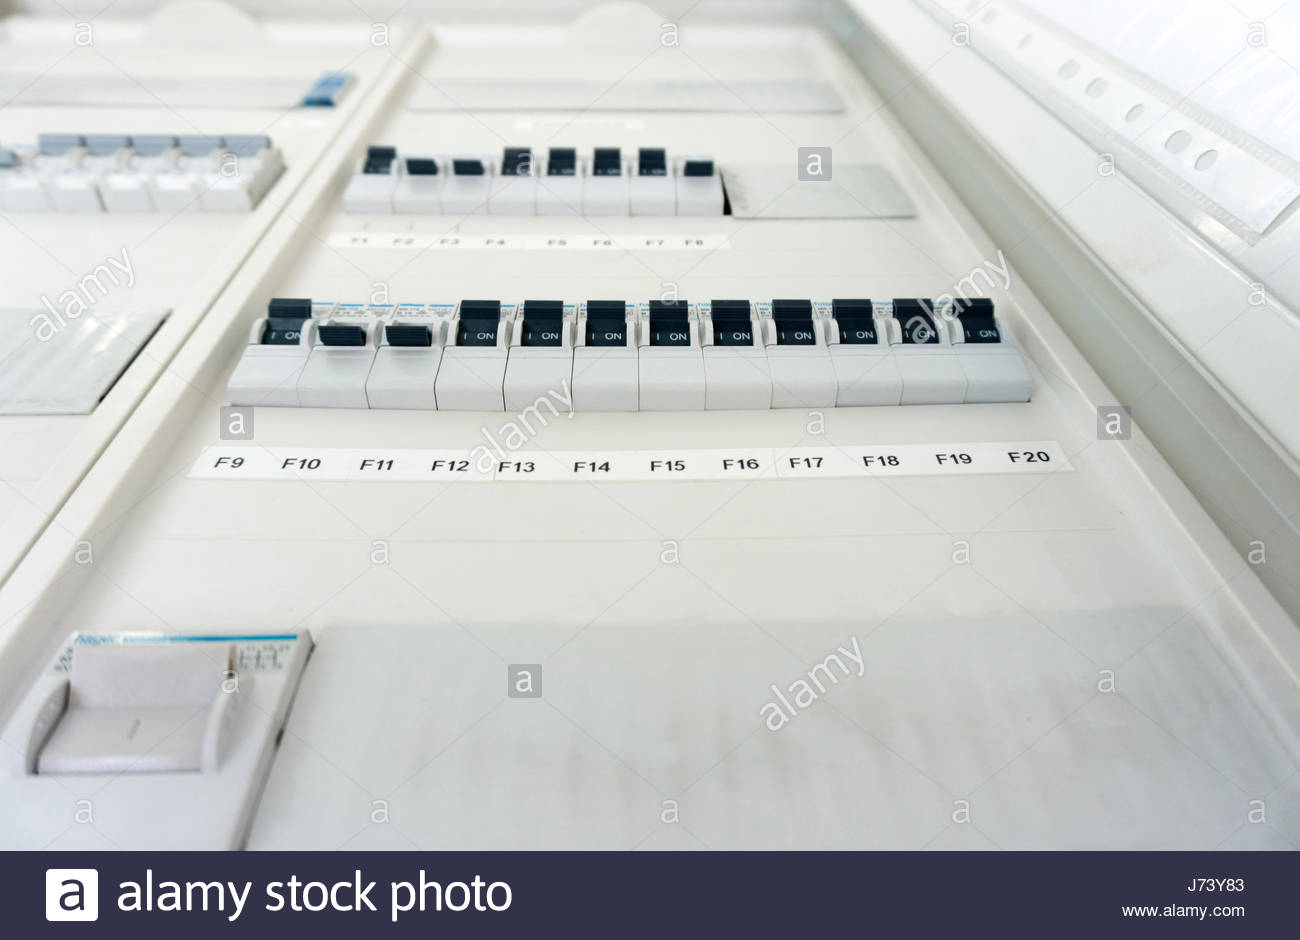 Fuse Box With Automatic Fuses For Installation Stock Photos F20 Fusebox Many Image